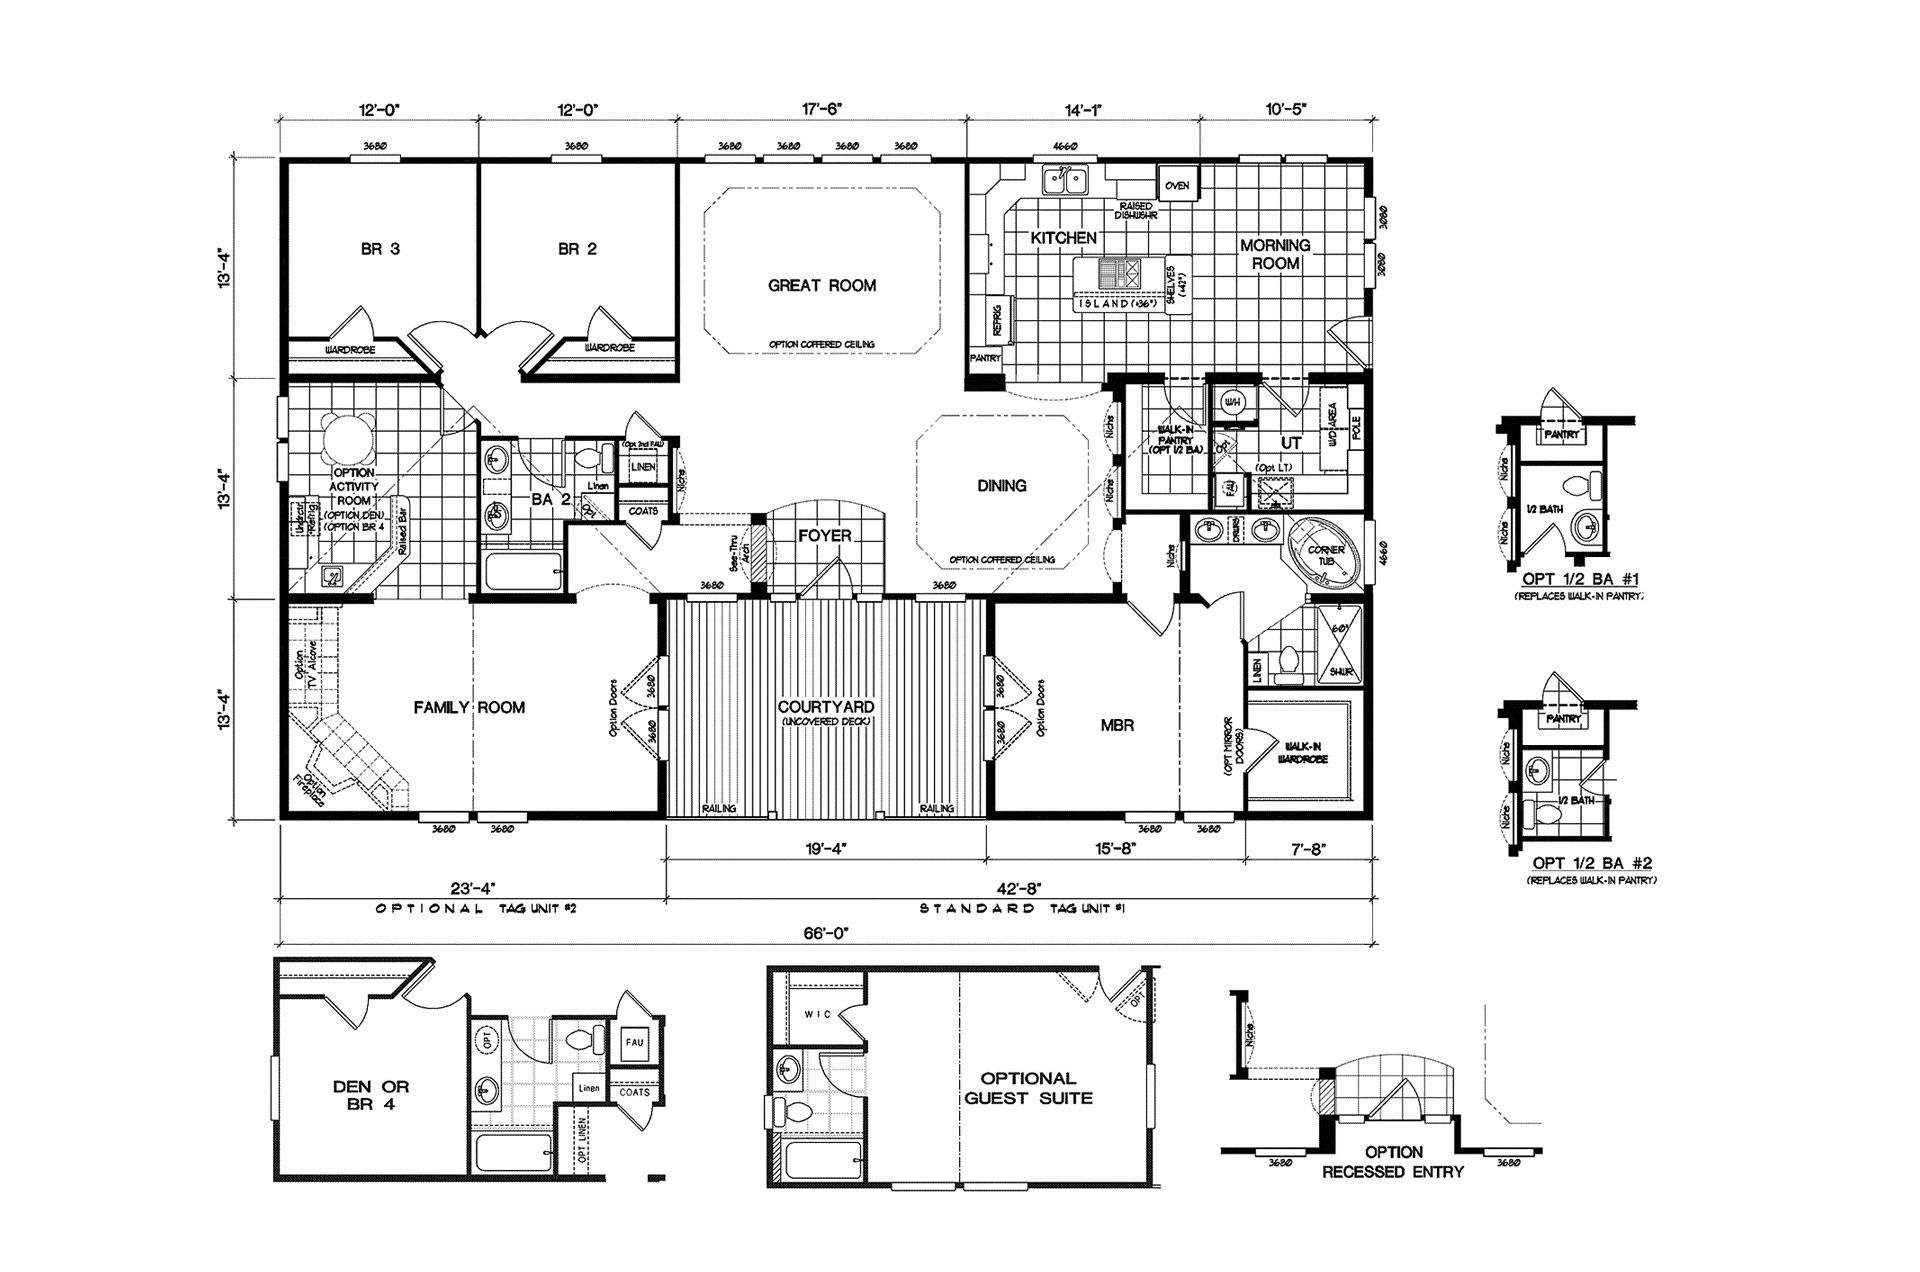 Quadruple wide mobile home floor plans 5 bedroom 3 for 5 bedroom 3 bath mobile home